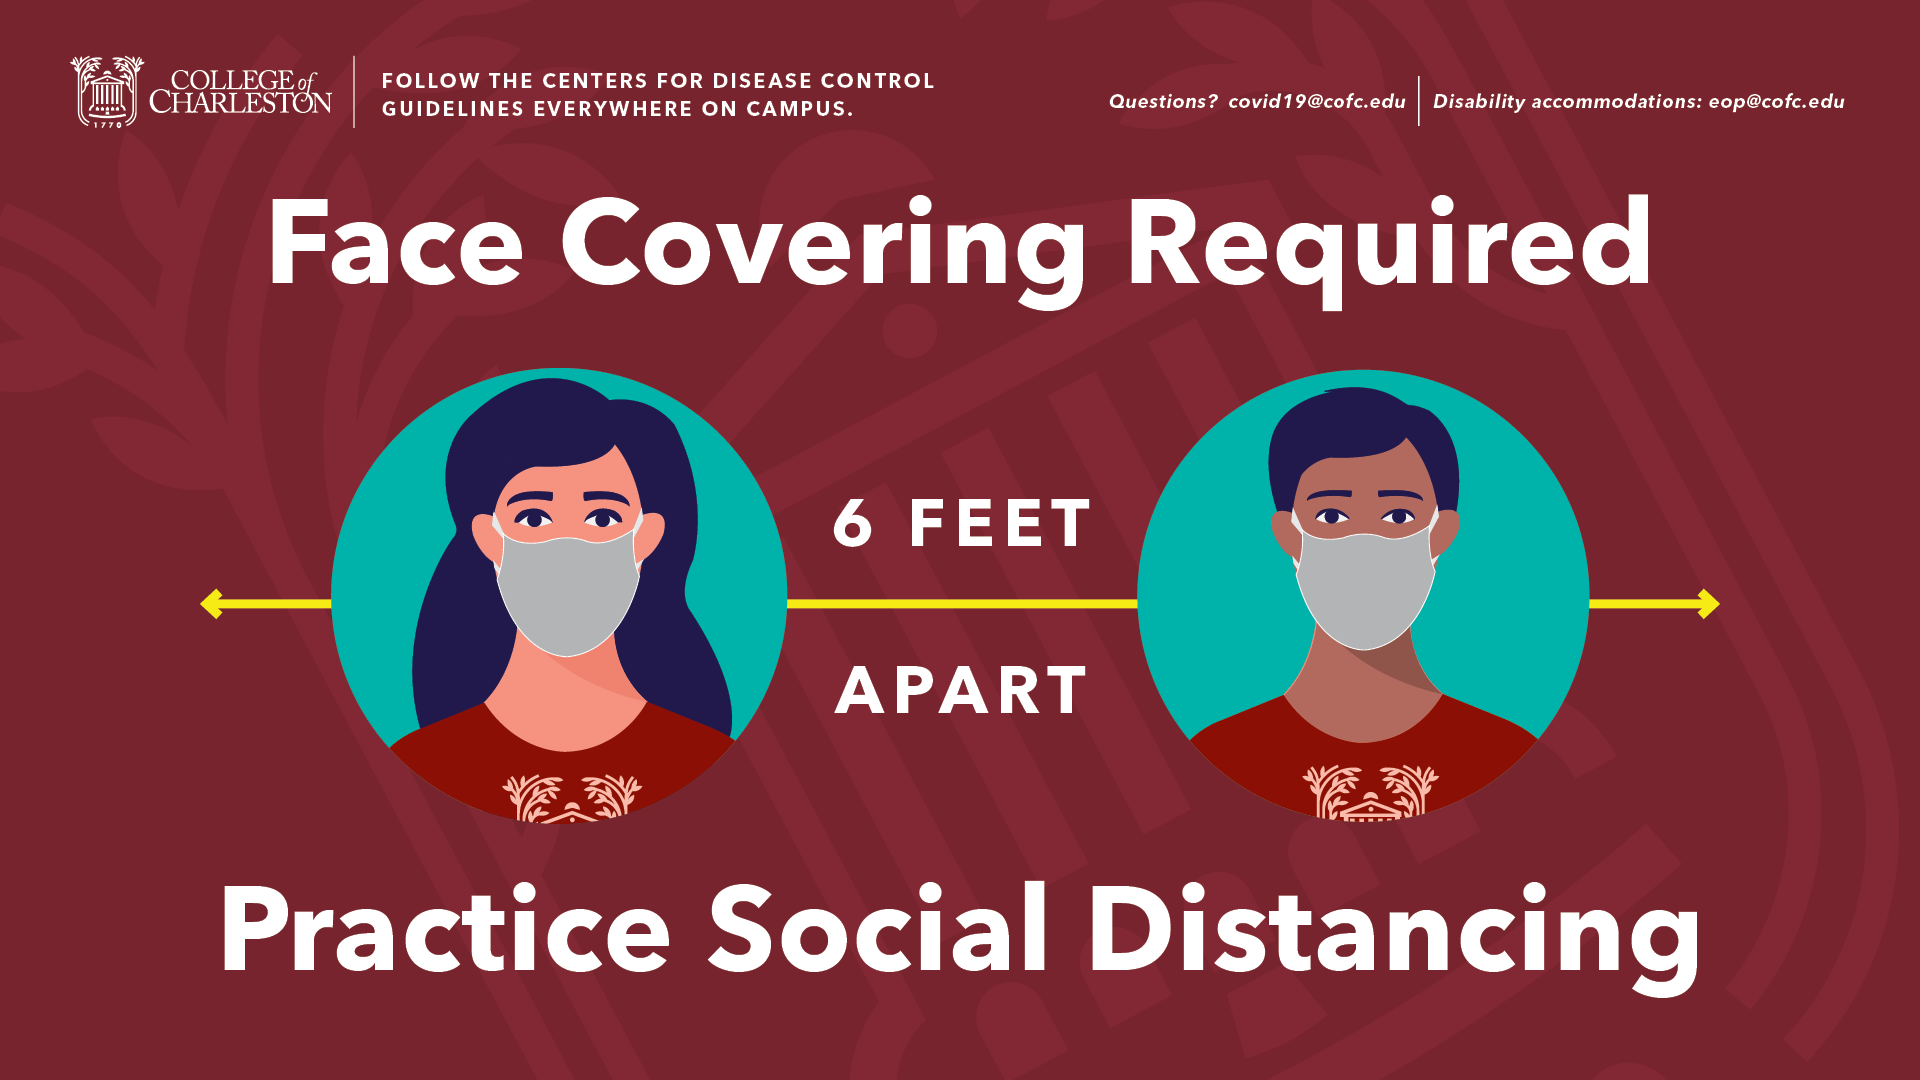 image of signage for Face Cover and Social Distancing